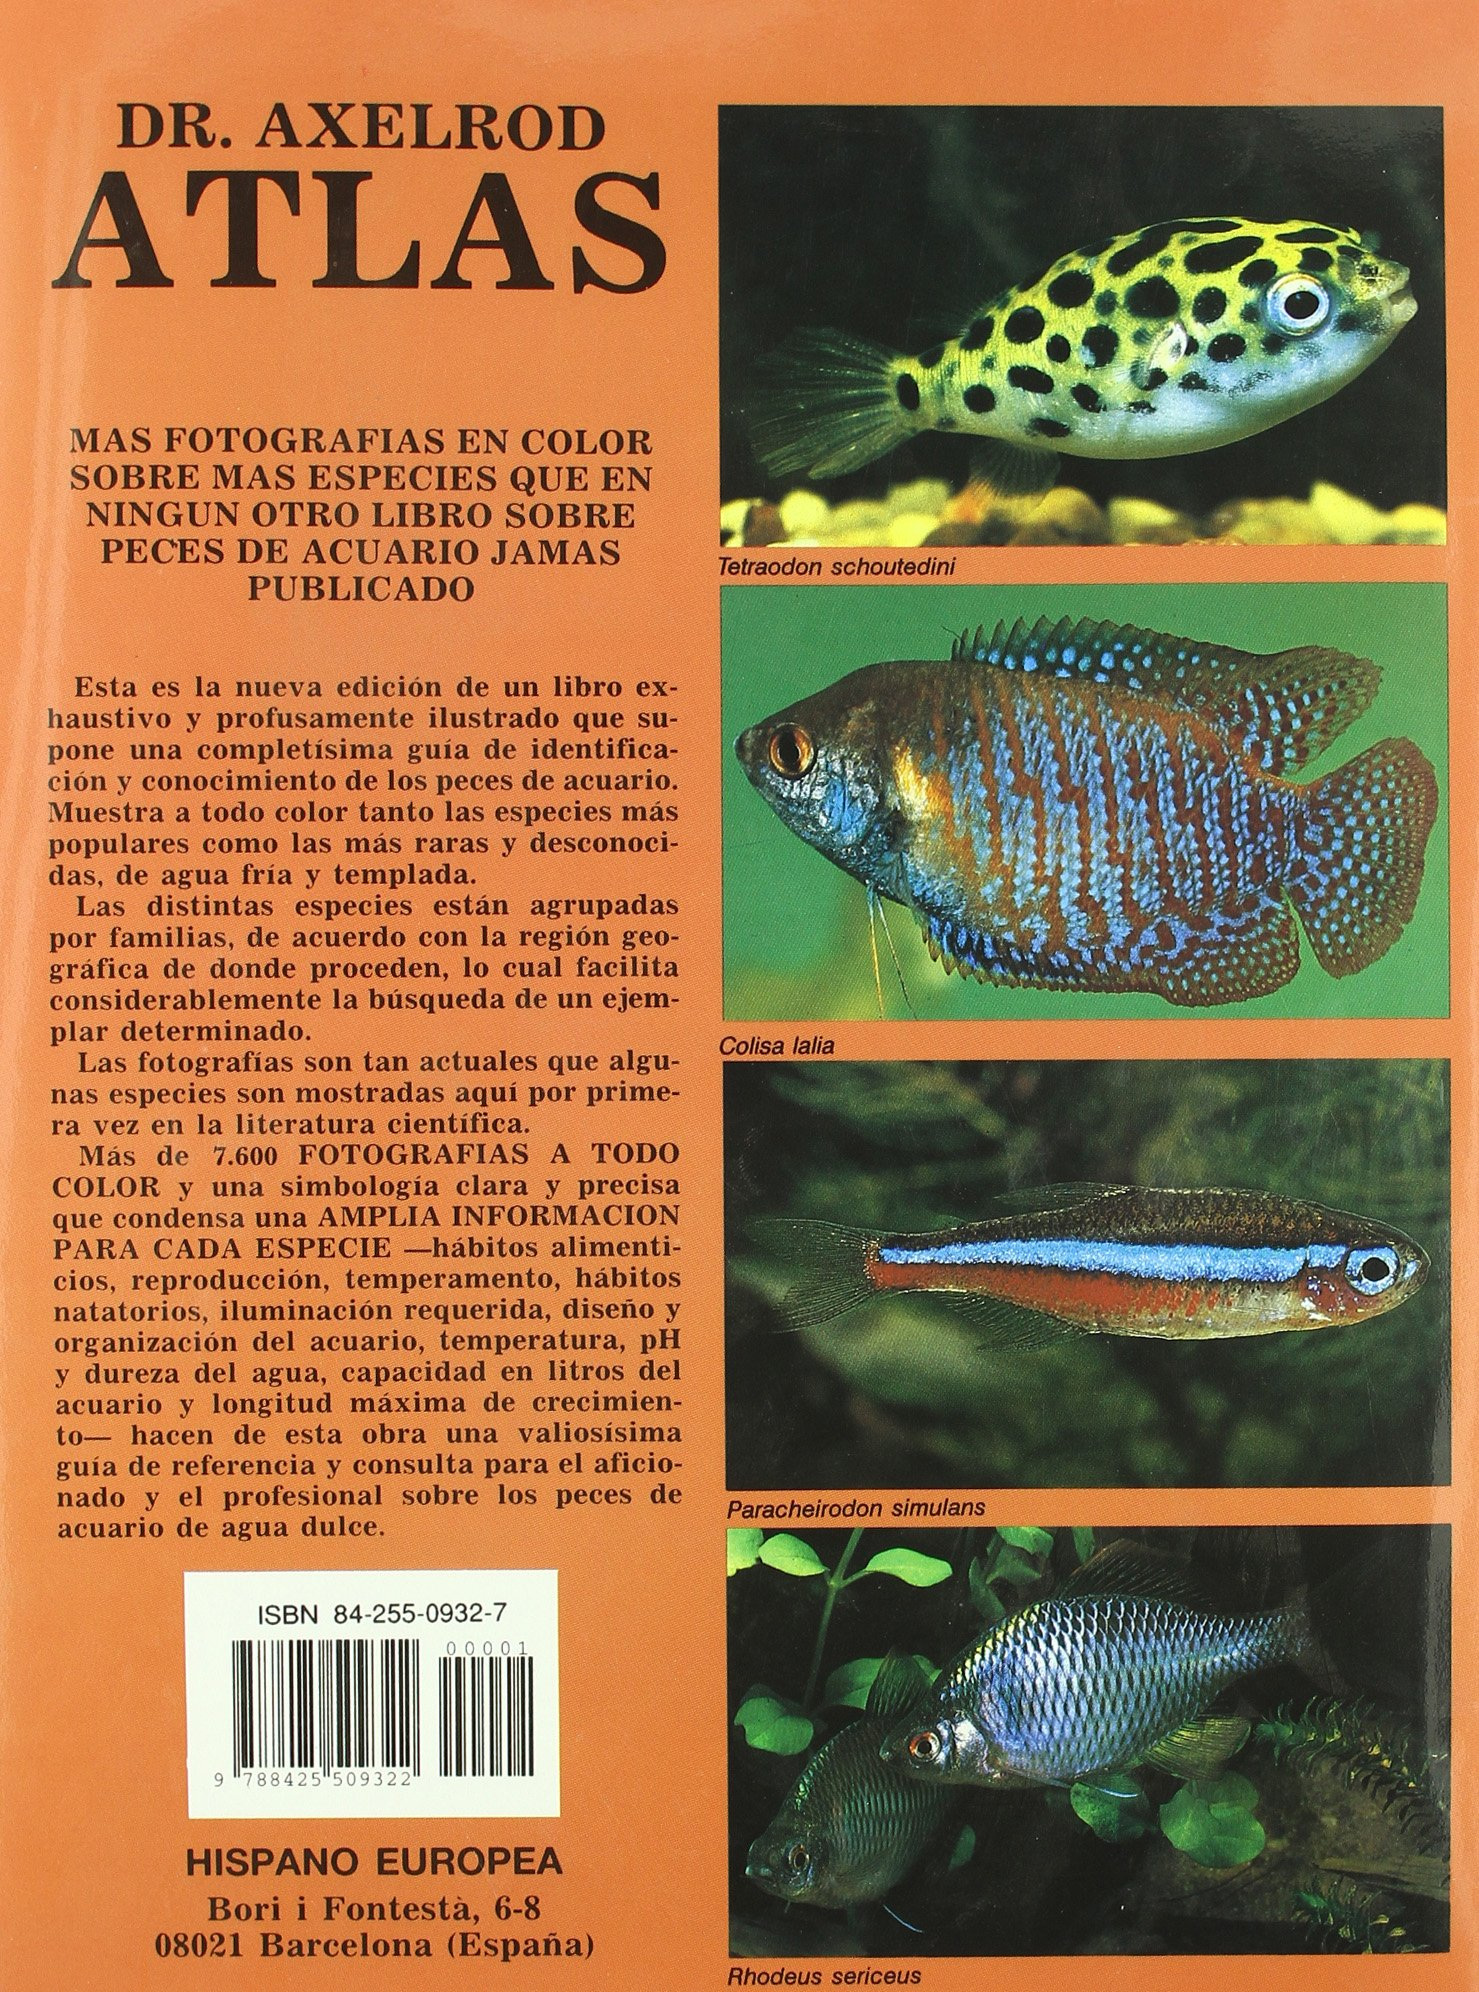 Atlas de peces de acuario de agua dulce / Fish Atlas of Freshwater Aquarium (Spanish Edition): Dr. Axelrod, Dr. Burgess: 9788425509322: Amazon.com: Books